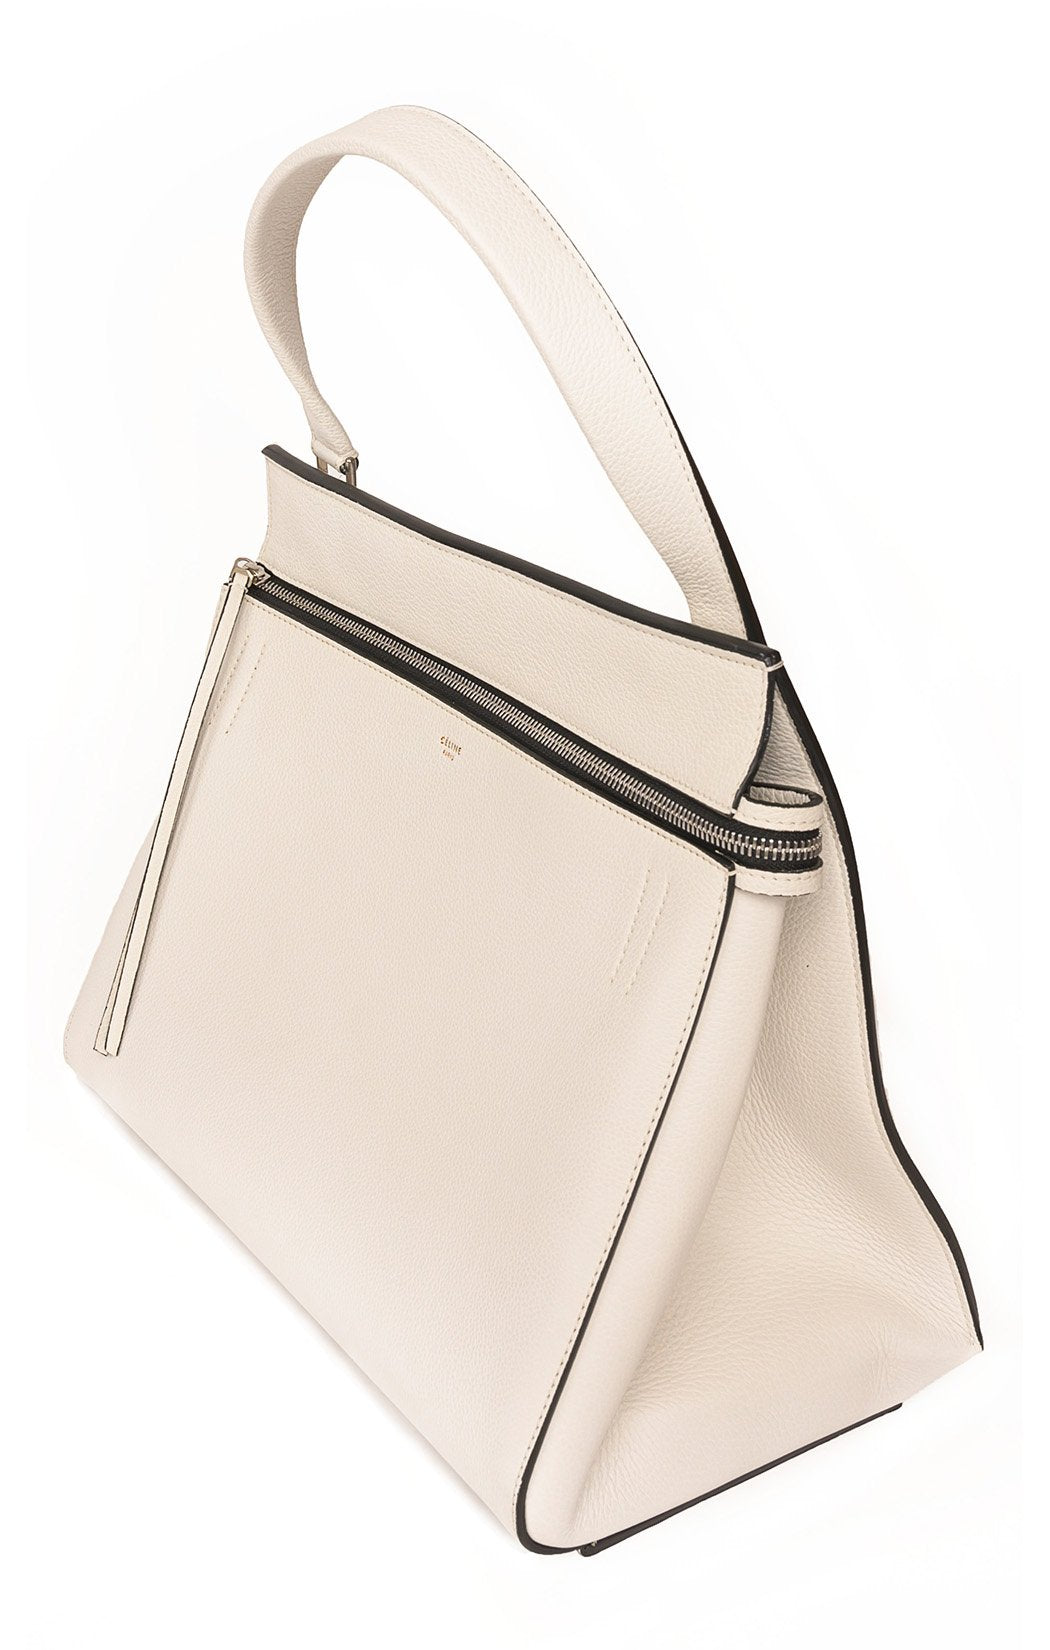 Another side view of CELINE with tags Handbag